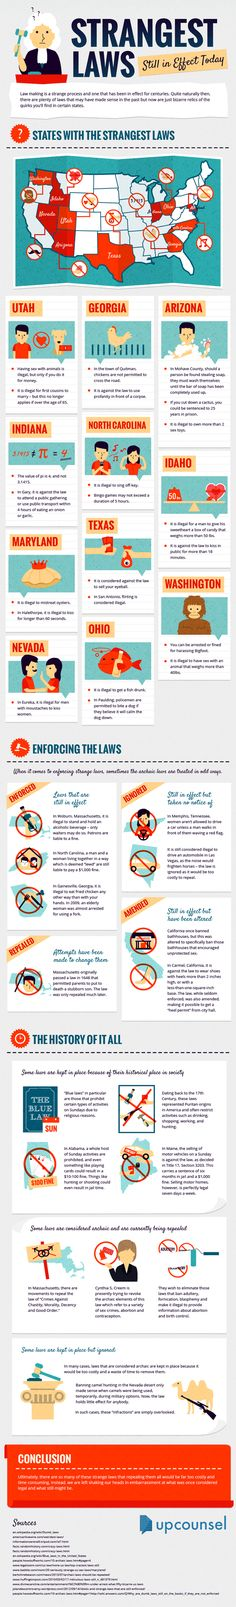 Bizarre Regional Laws In the U.S. Are Even Weirder Than You Thought #infographic  Why did the chicken cross the road?   Because he wasn't in Georgia!